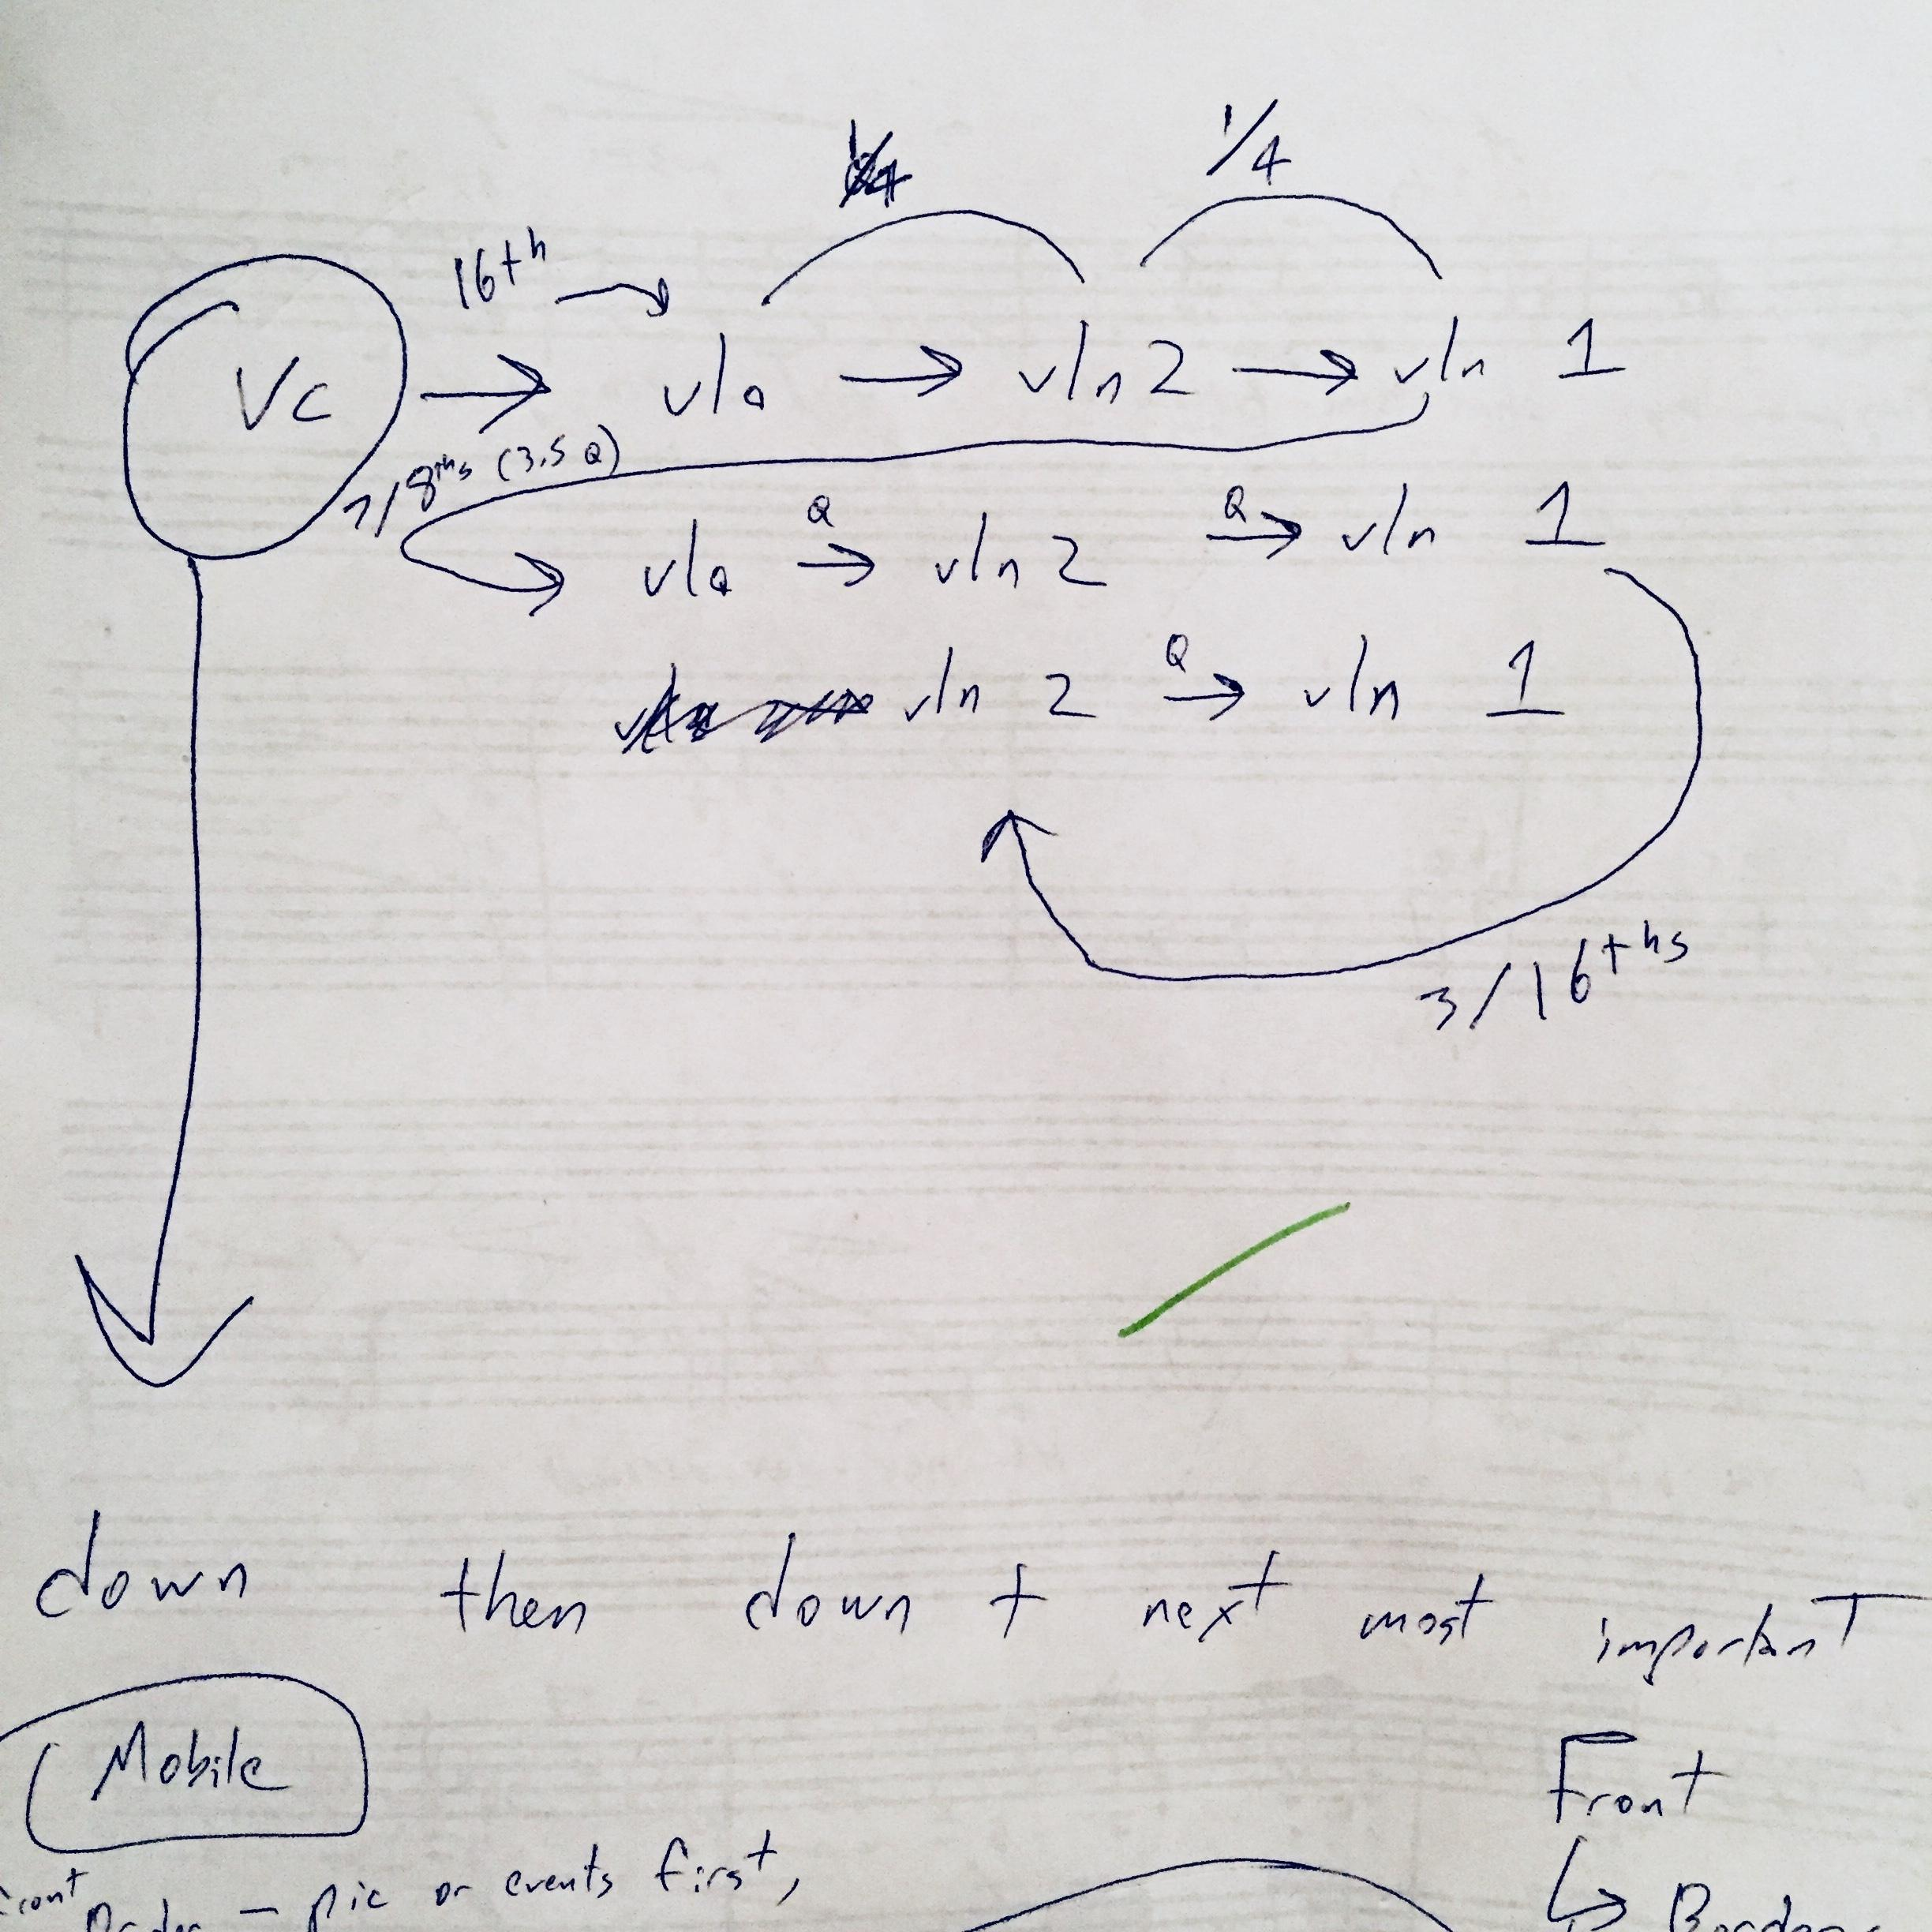 The plan for the rhythm in Light Delays